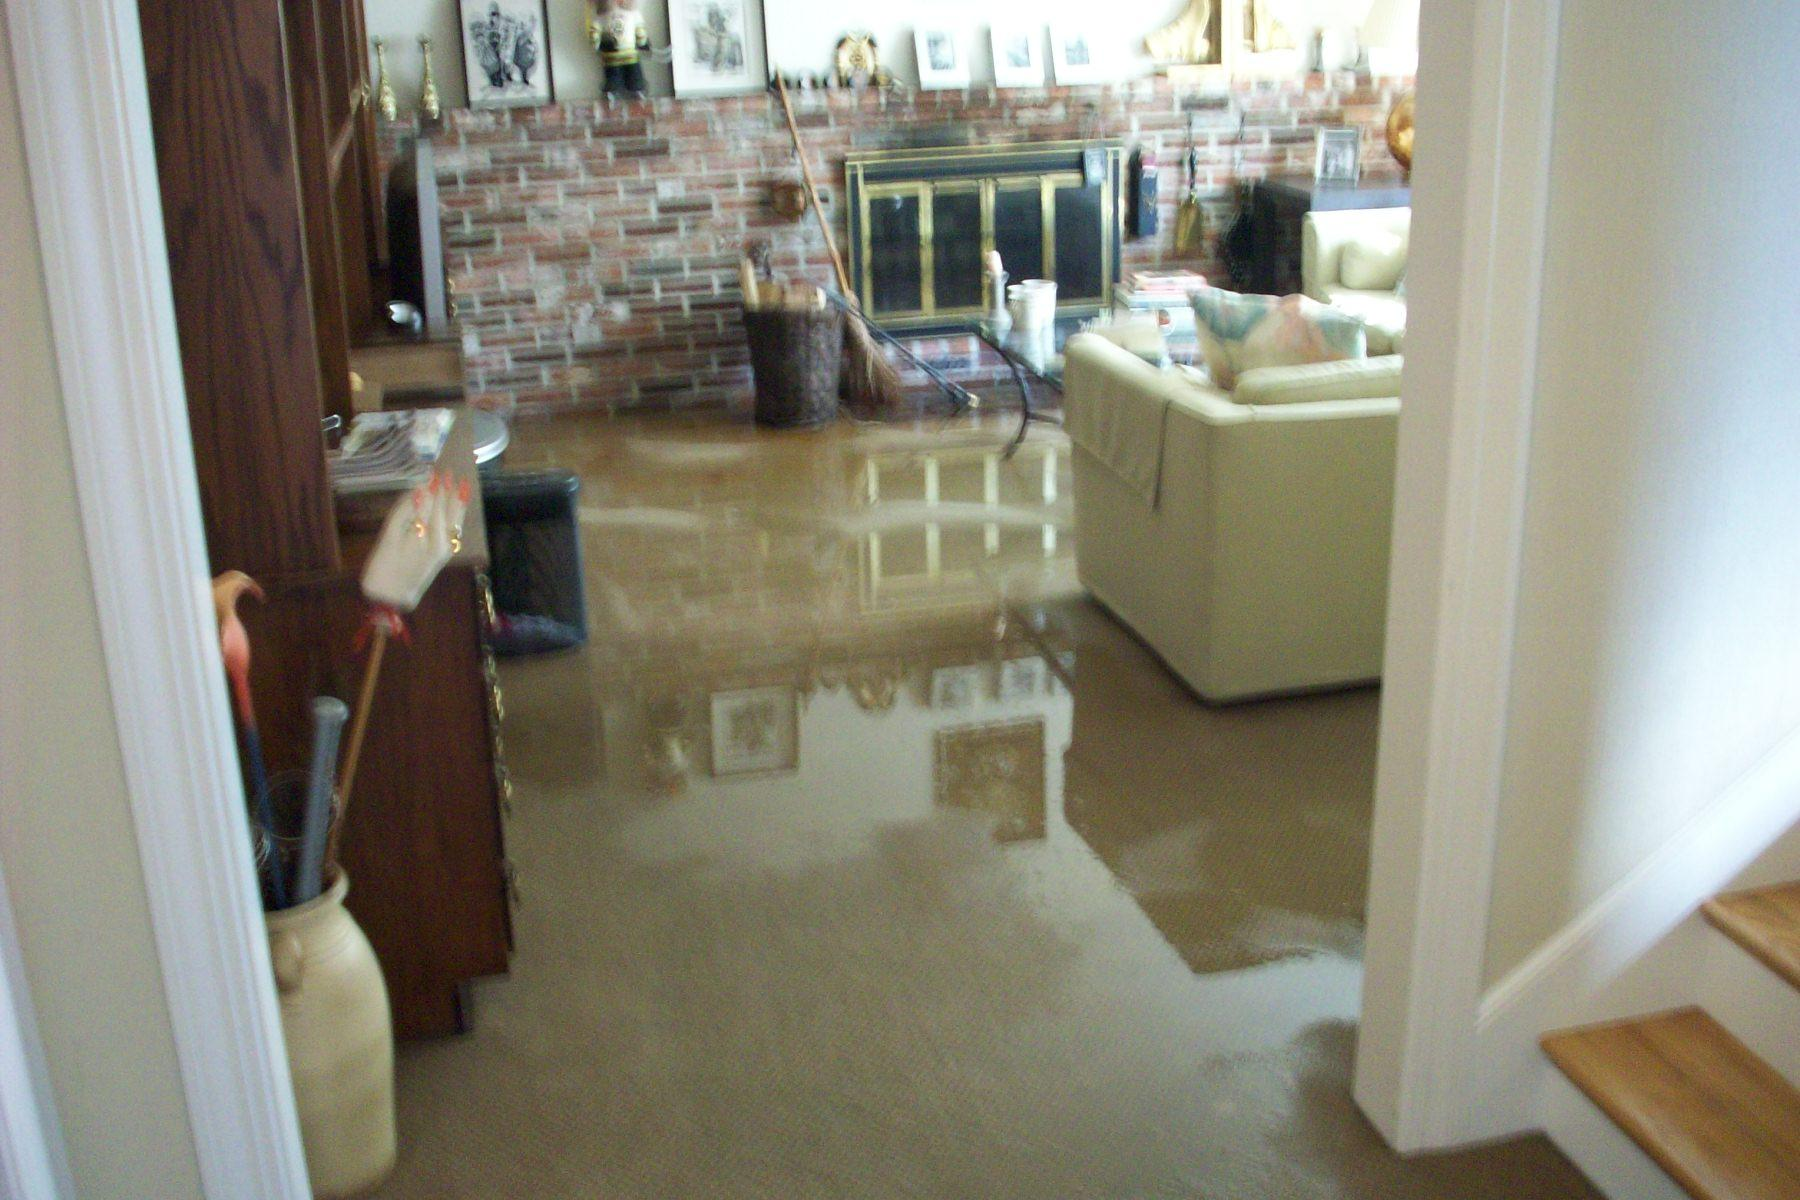 flooded basement,basement,wet basement,basment water,basement flood,basement flooded